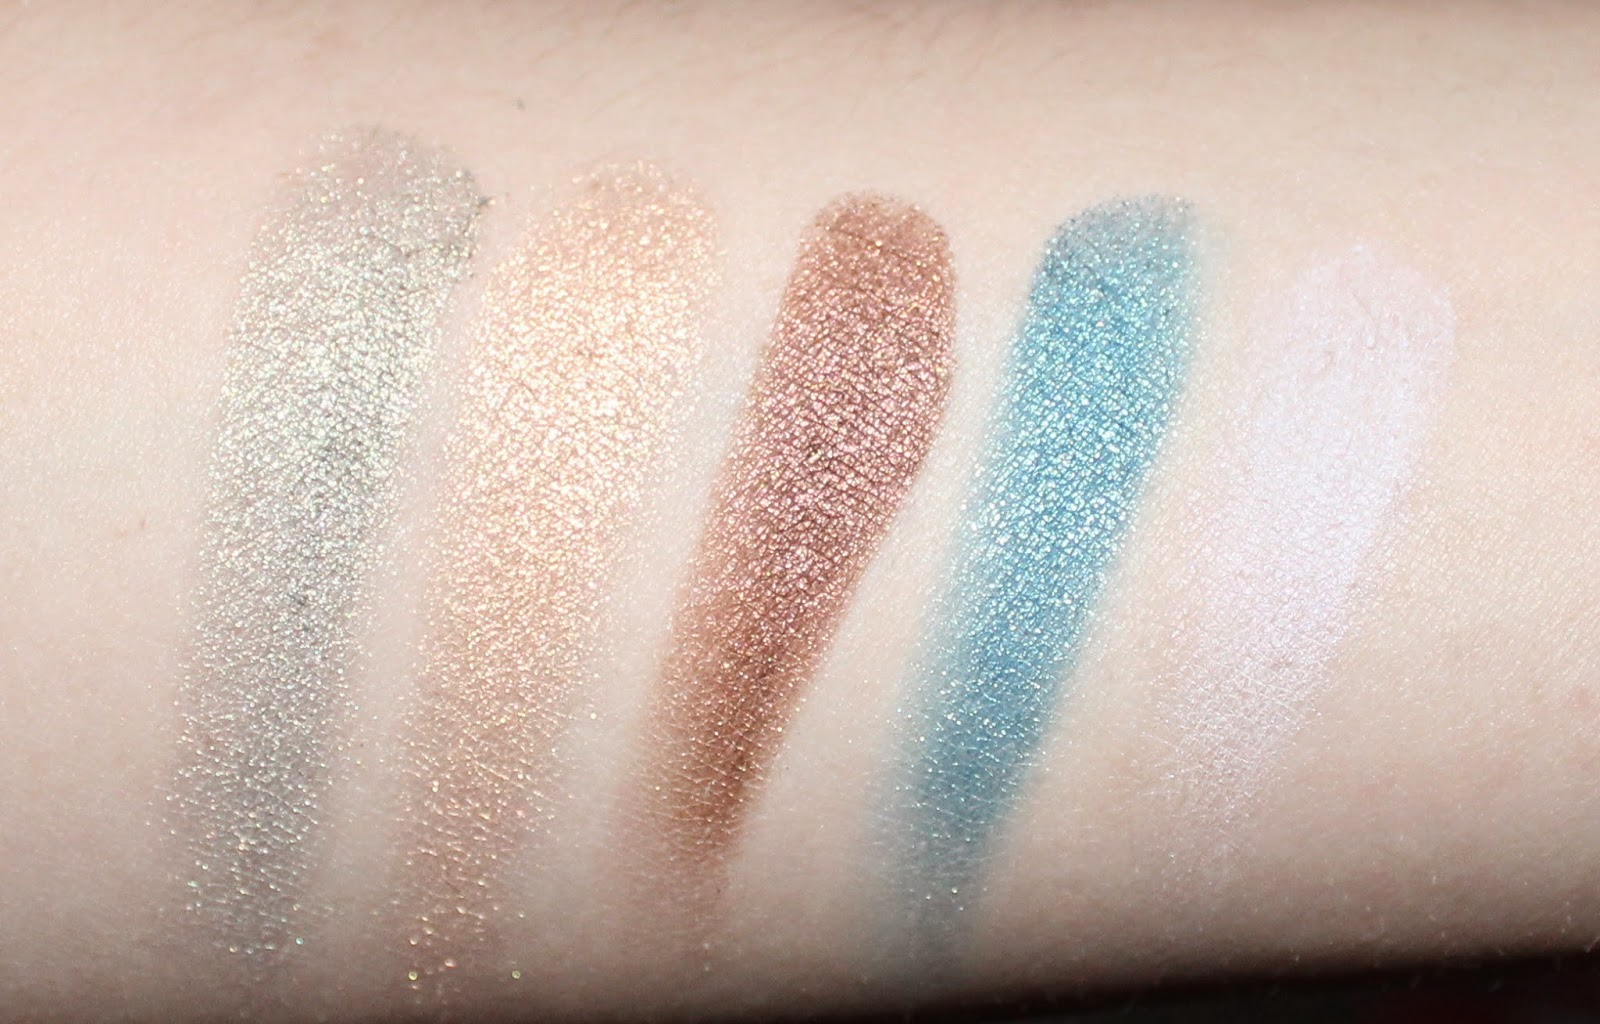 Dior 5 Couleurs Eyeshadow Palette in Contraste Horizon Swatches